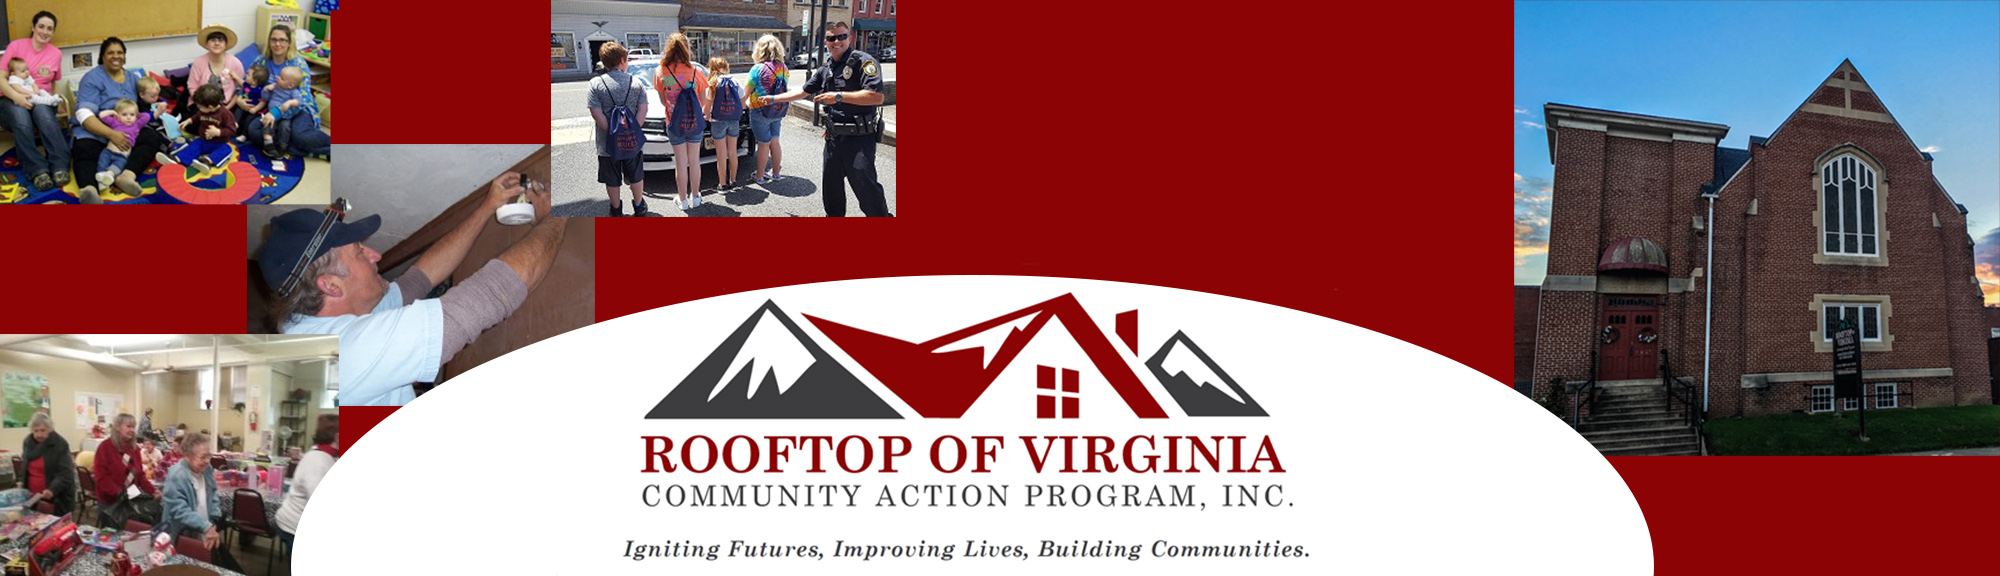 Rooftop of Virginia Community Action Program